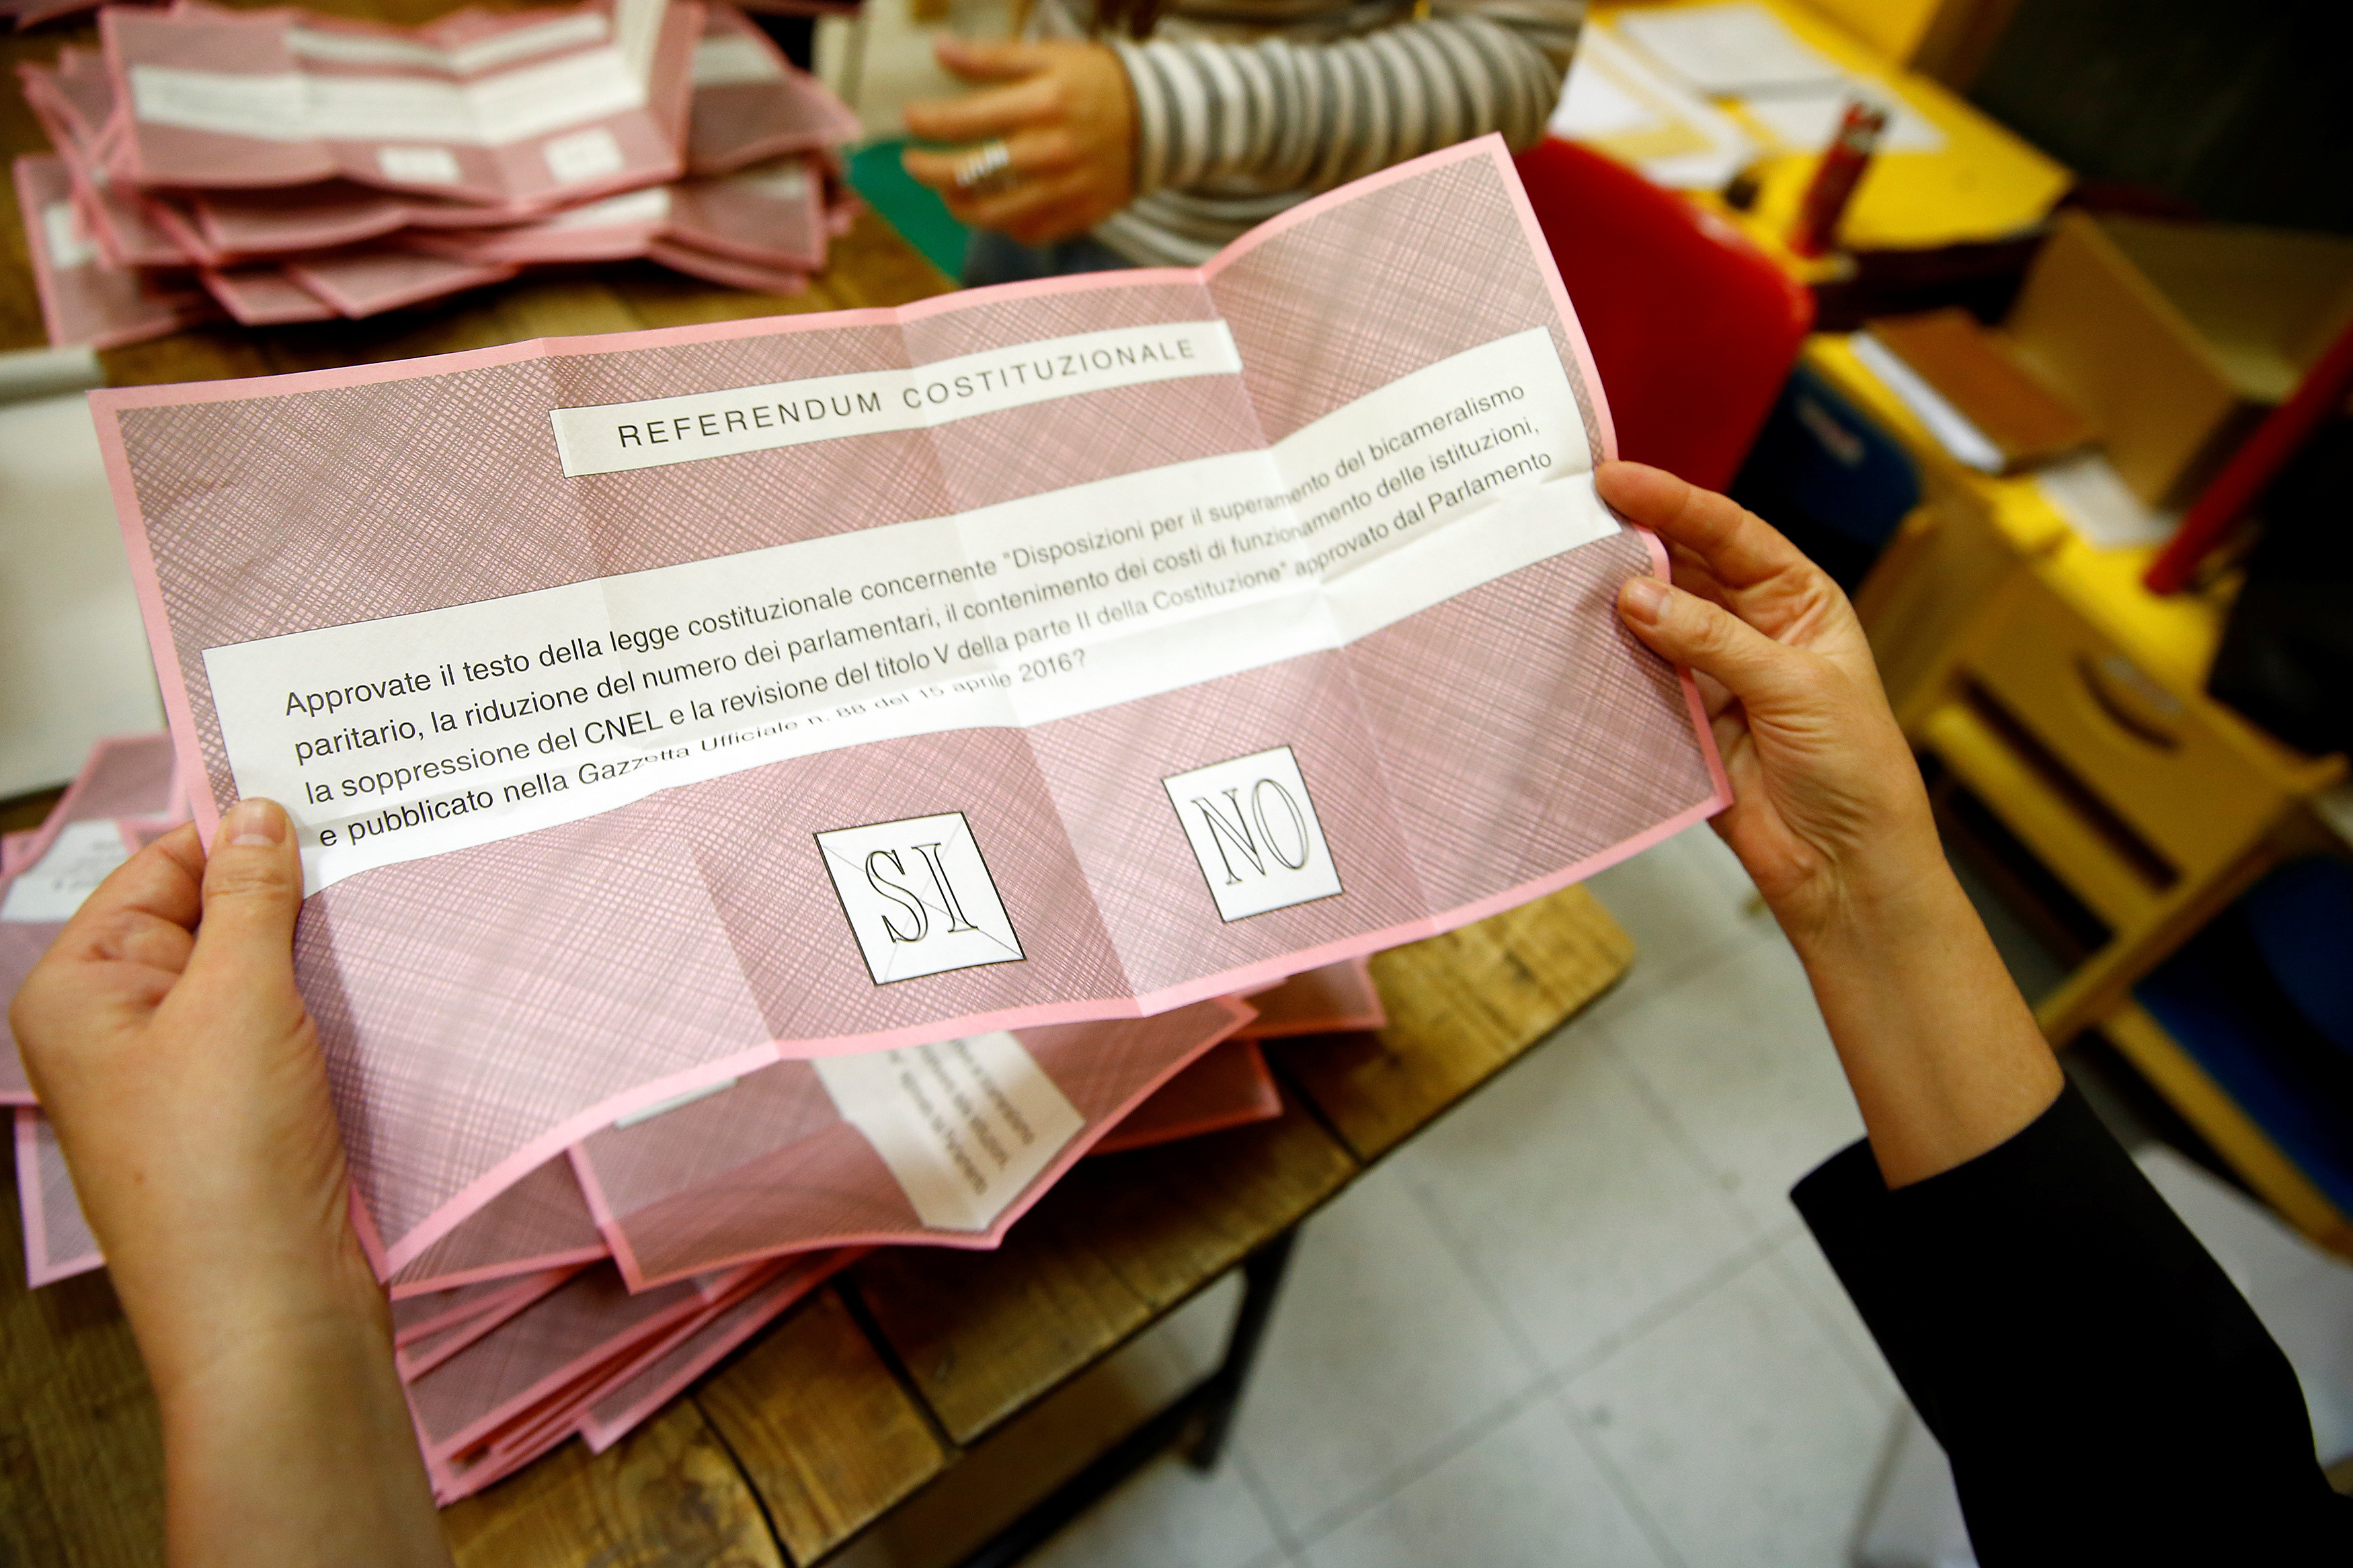 A volunteer counts ballots for a referendum on constitutional reform at a polling station in Rome, Italy, December 4, 2016. REUTERS/Tony Gentile - RTSUMSI